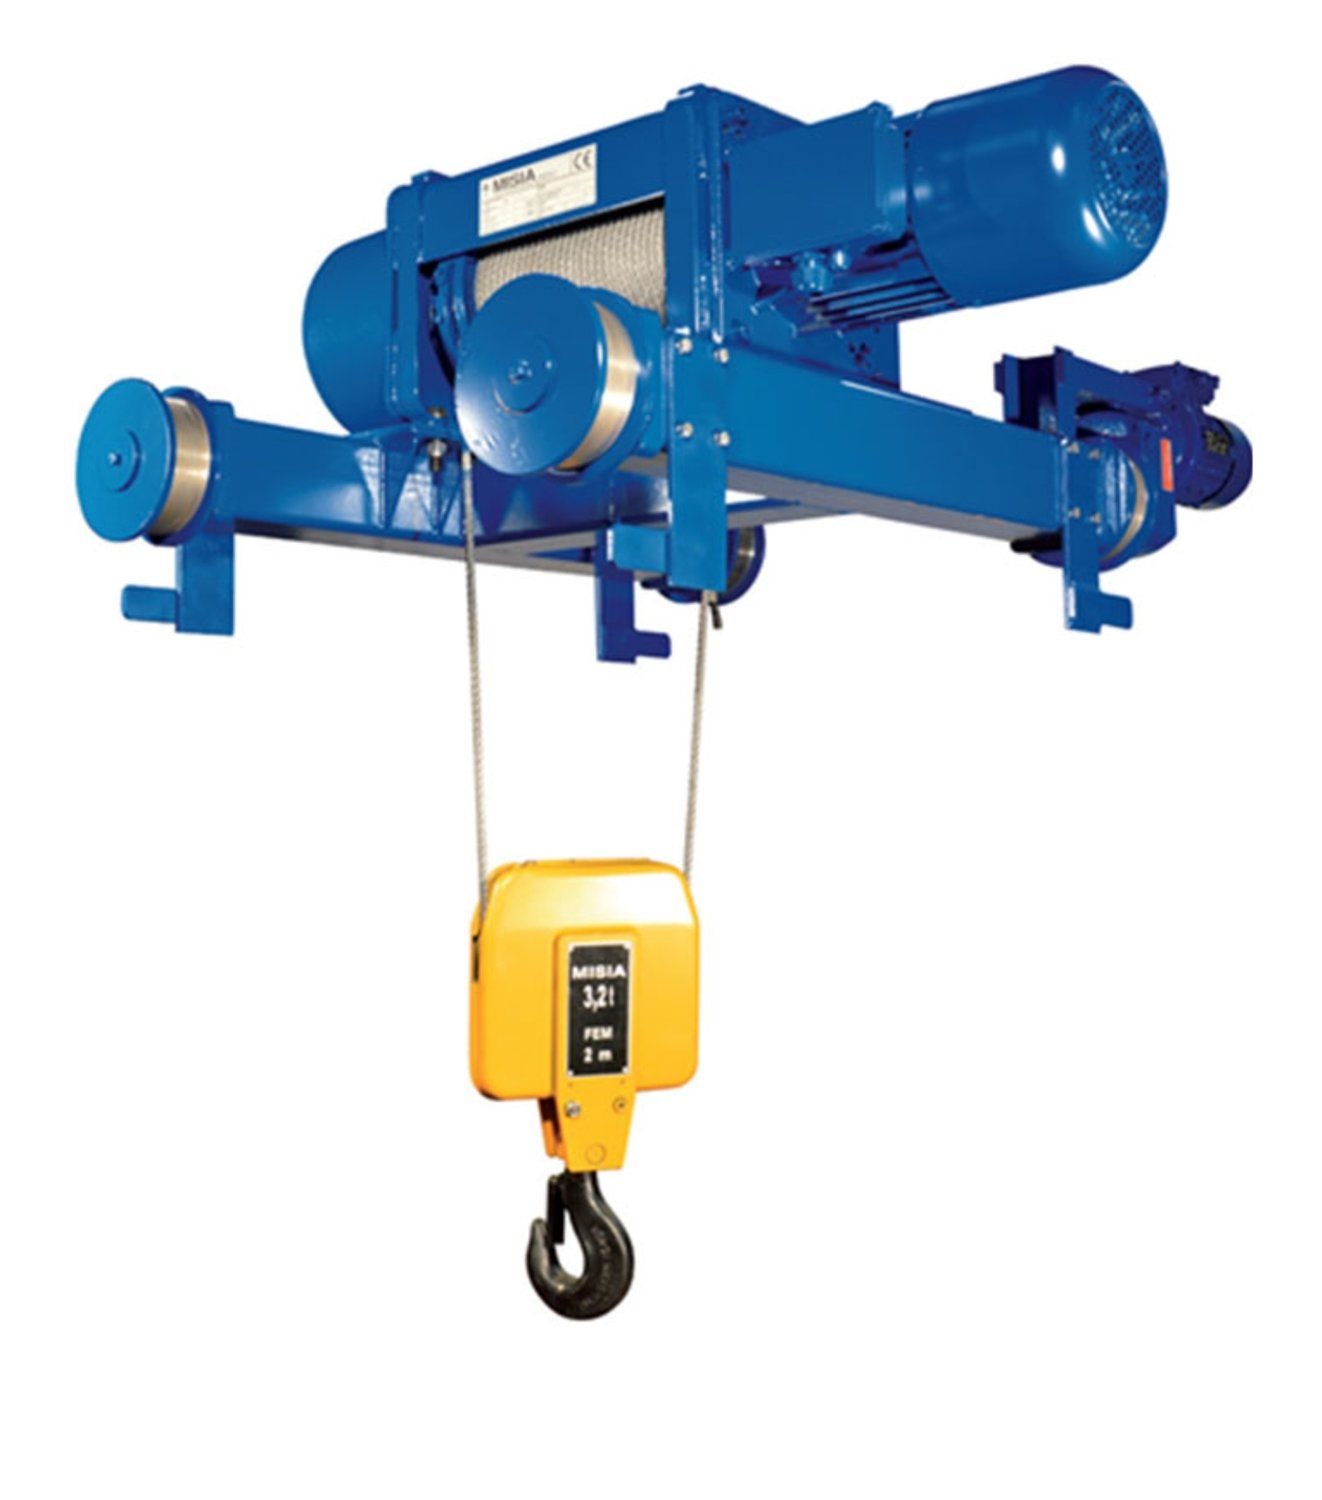 MISIA HOIST 5,000 KG FOUR WHEEL CARRIAGE